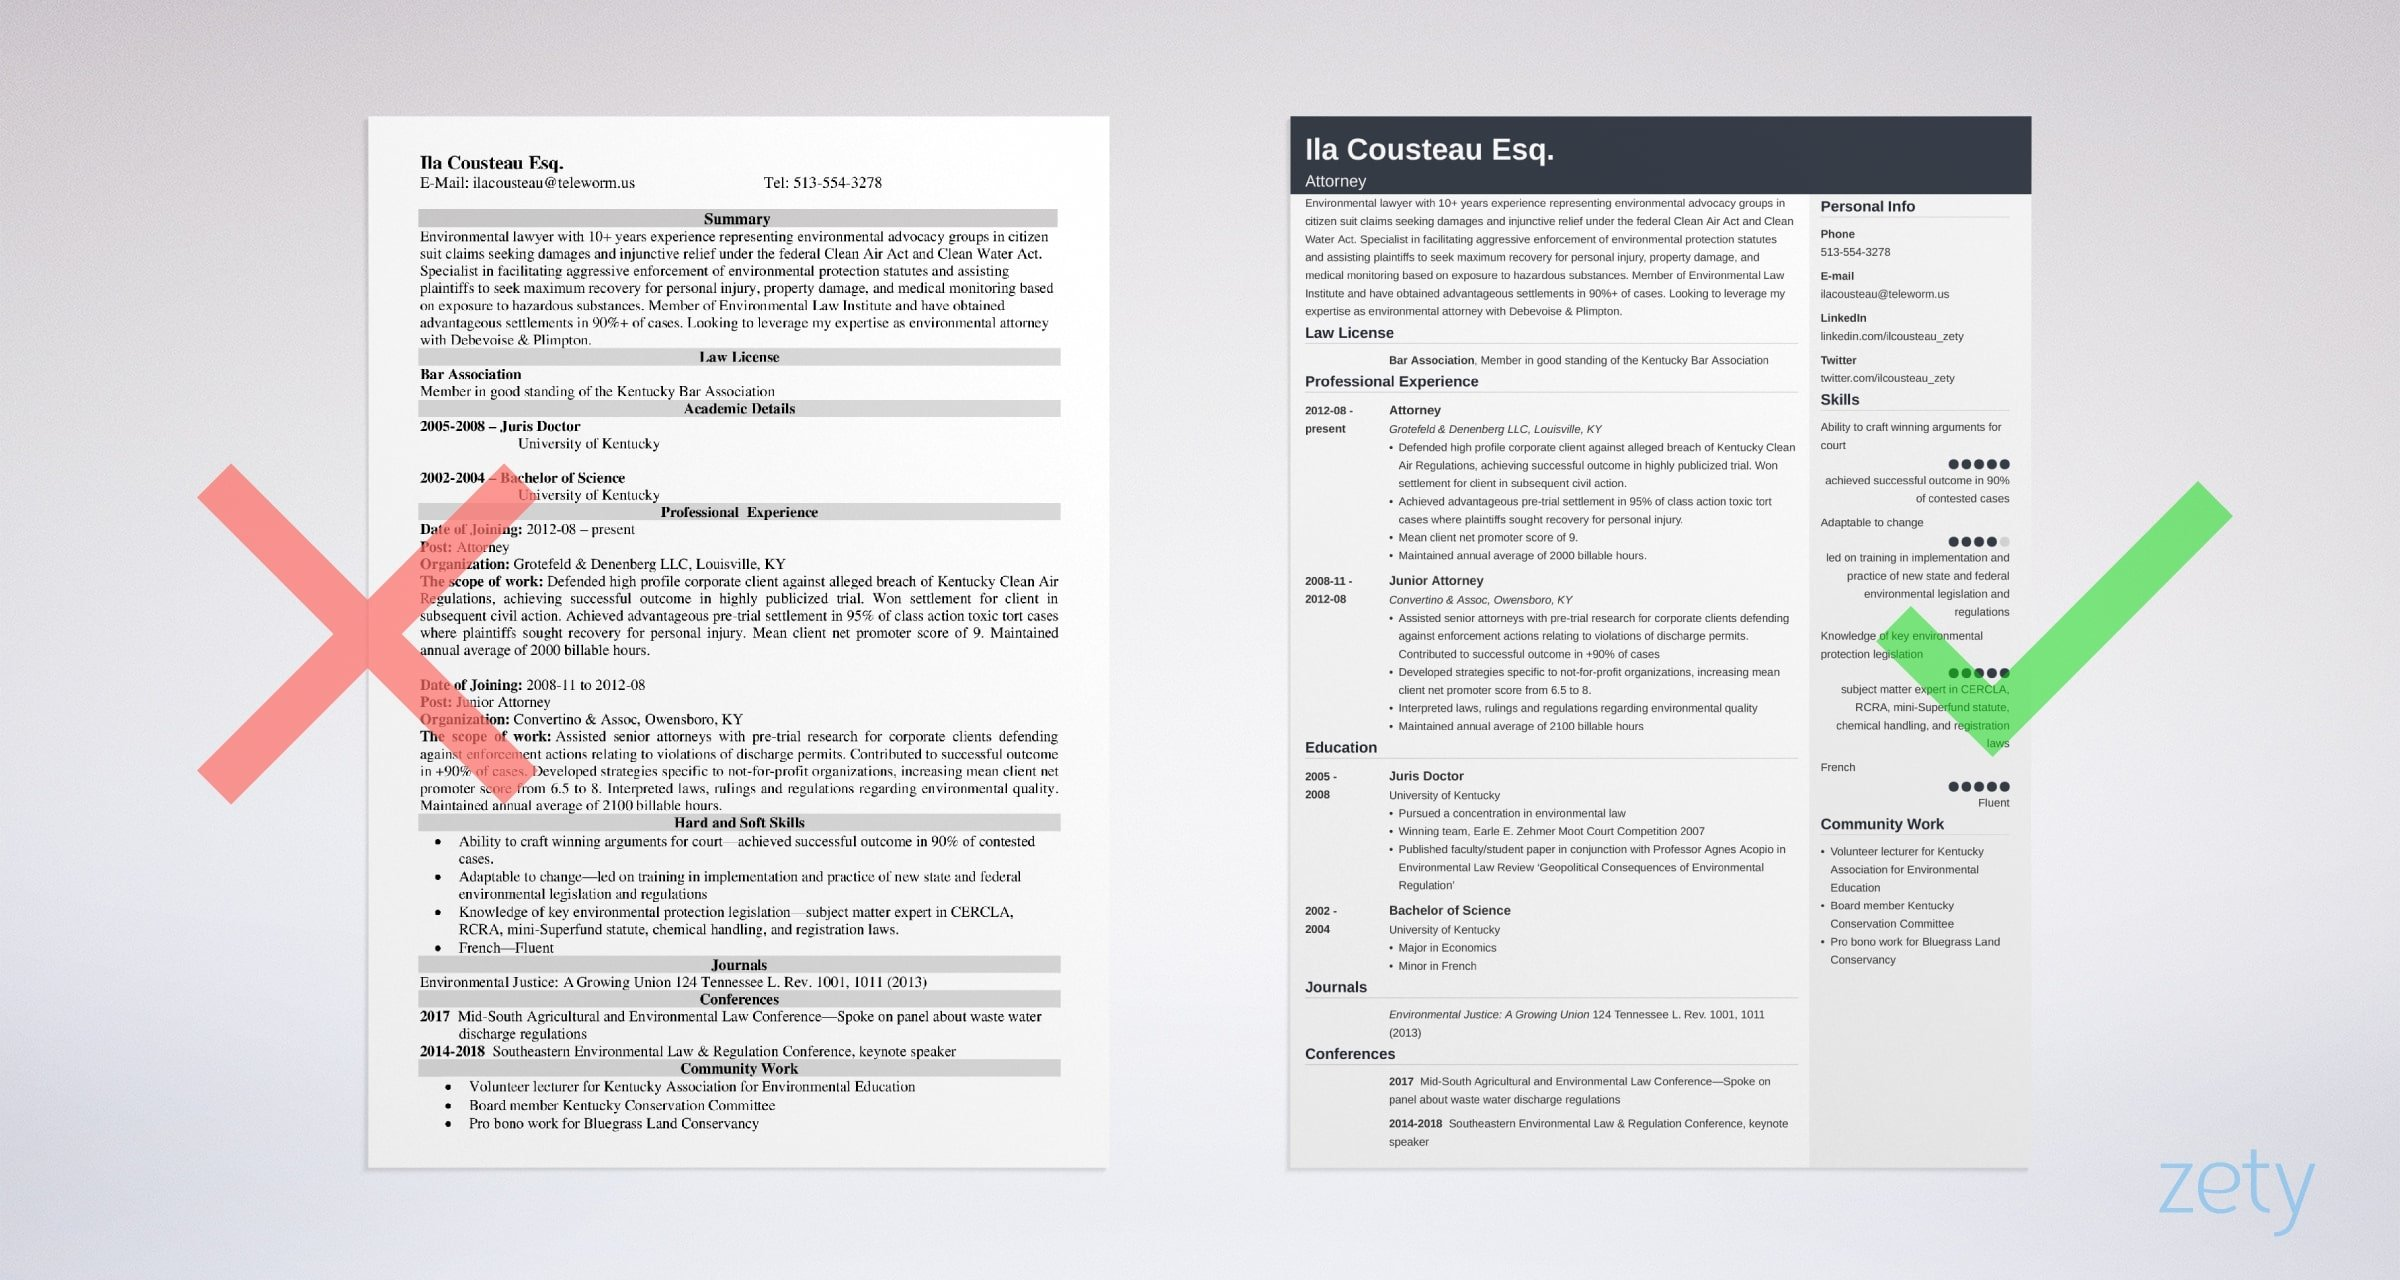 Law & Legal Resume Template & Examples: Guide & 20+ Tips